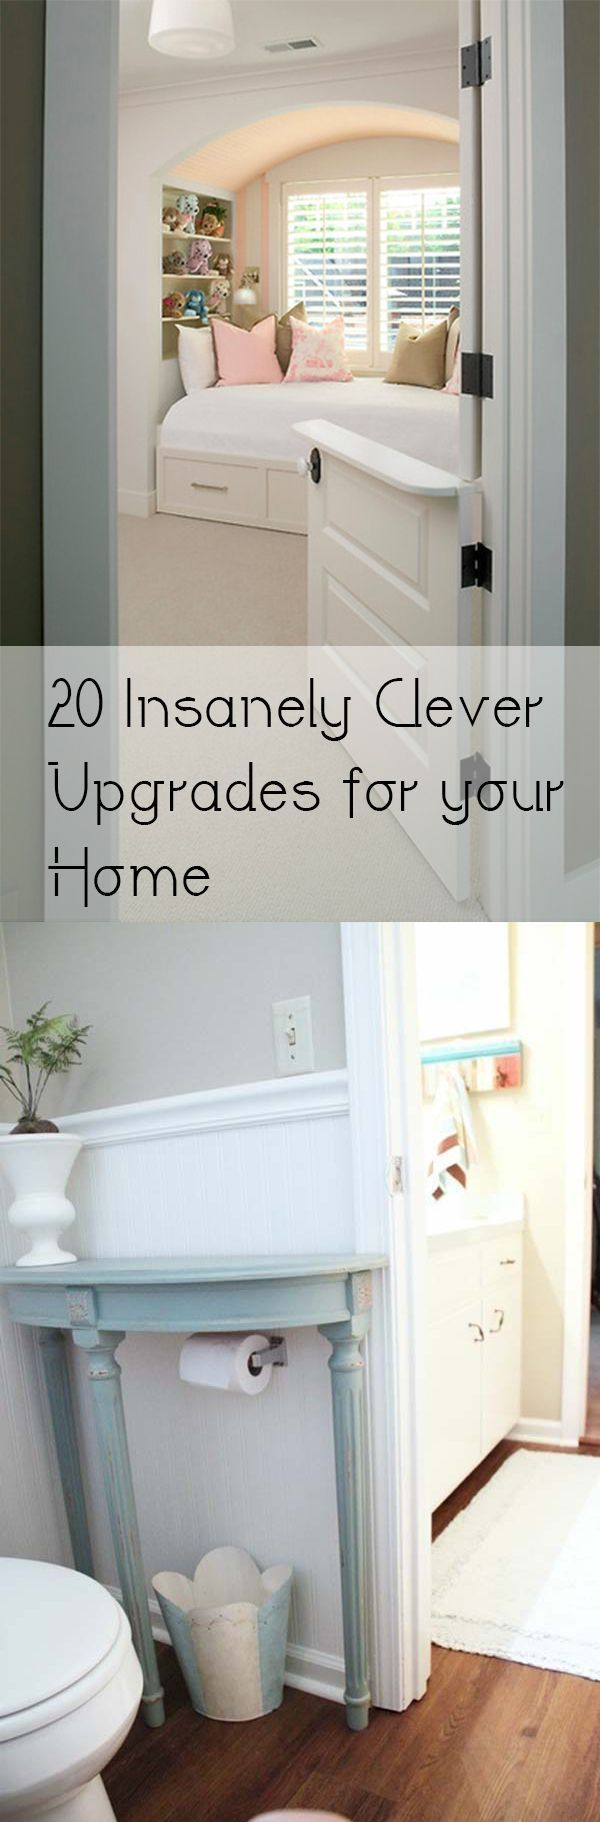 20 Insanely Clever Upgrades for your Home